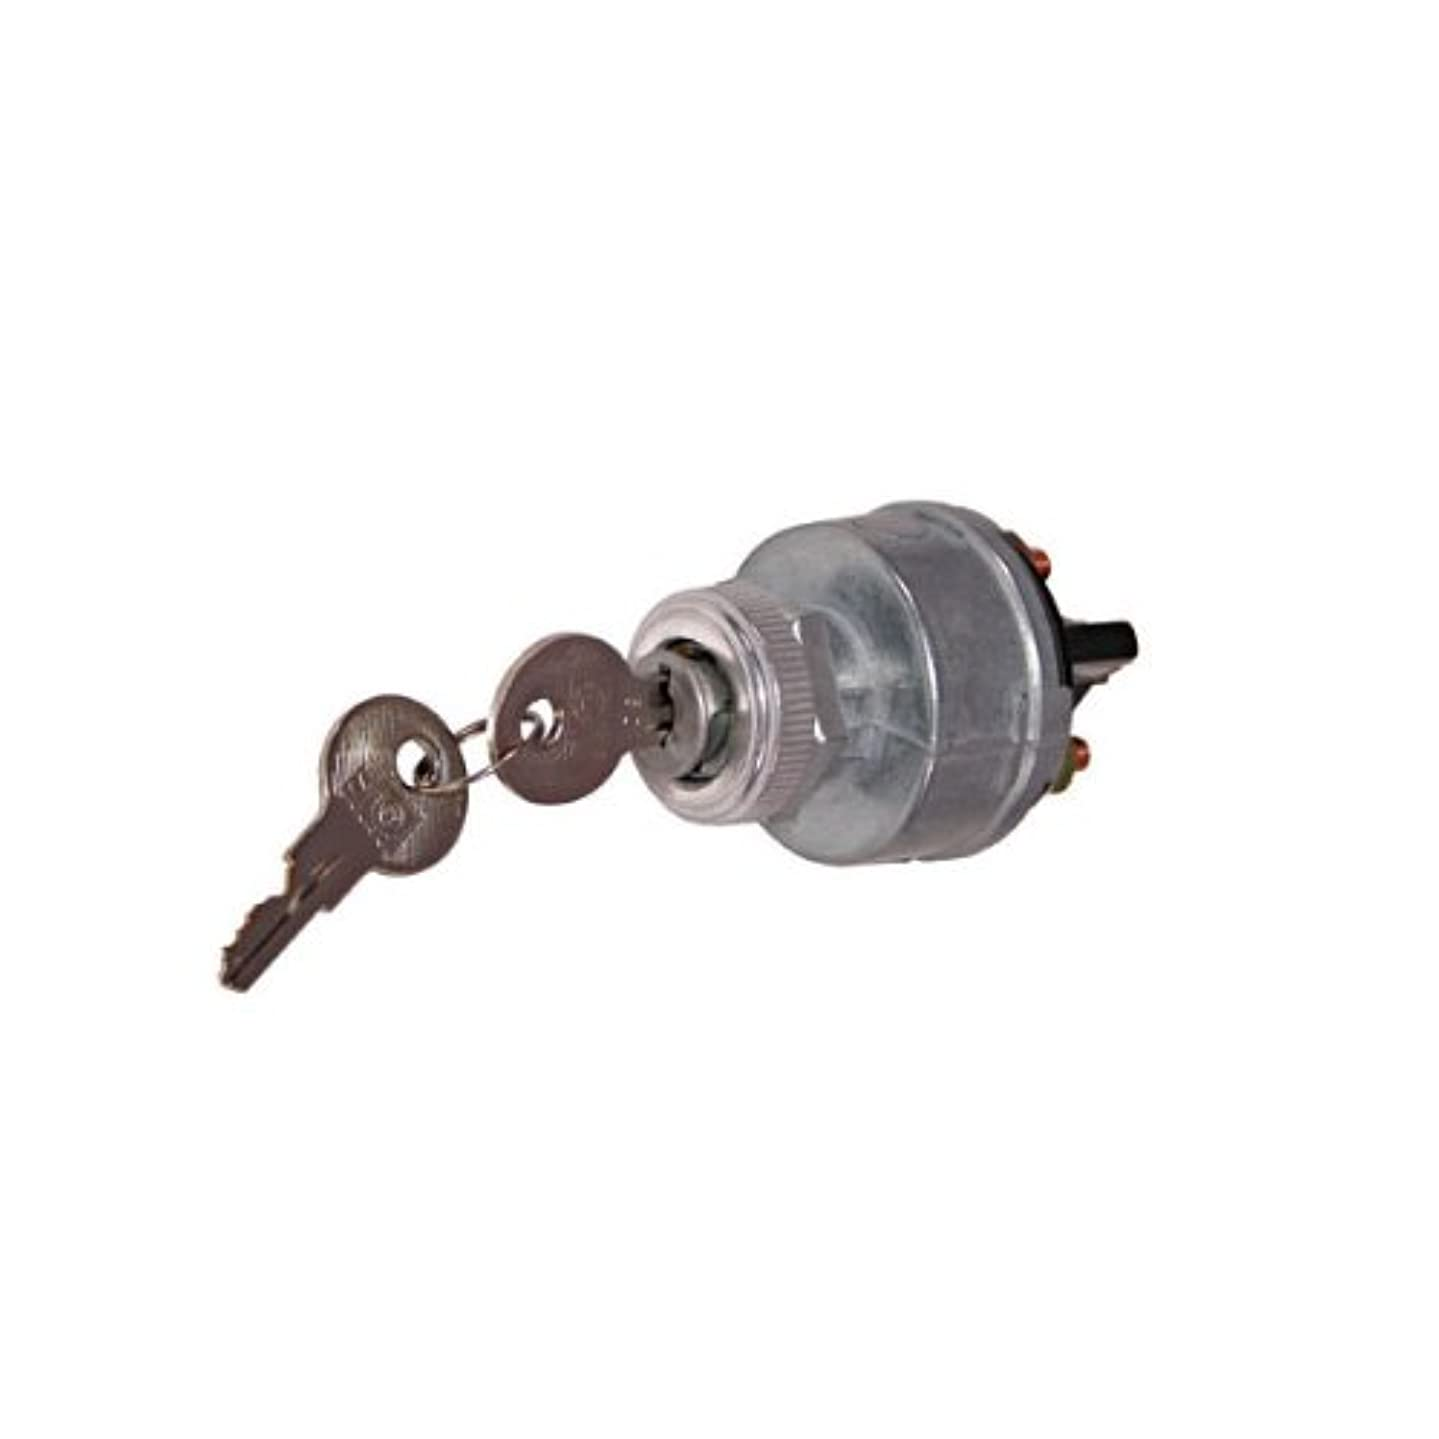 Omix-Ada 17250.01 Ignition Lock and Cylinder